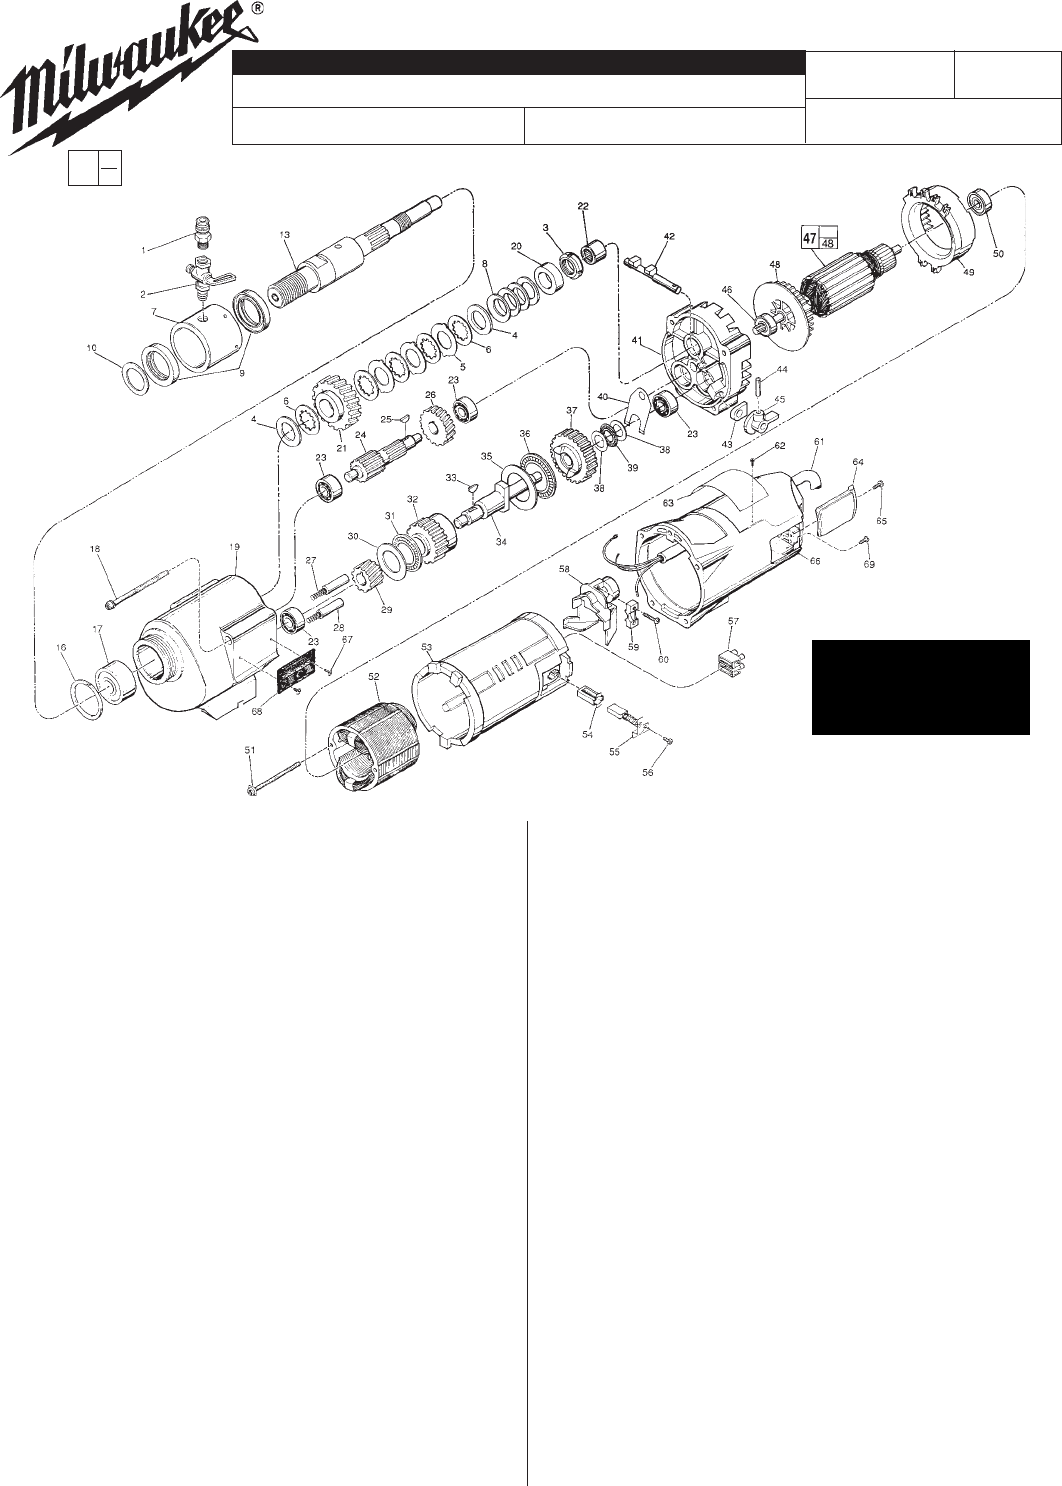 2003 cadillac cts wiring diagram pdf with Milwaukee Drill Wiring Diagram on 2000 Cadillac Escalade Wiring Diagram And Schematics as well Wiring Dometic For Diagram Ac 641916c751c0 besides 2004 Chevy Silverado Wiring Diagram besides 561542647275890571 further Gmc Terrain Oil Filter Location.